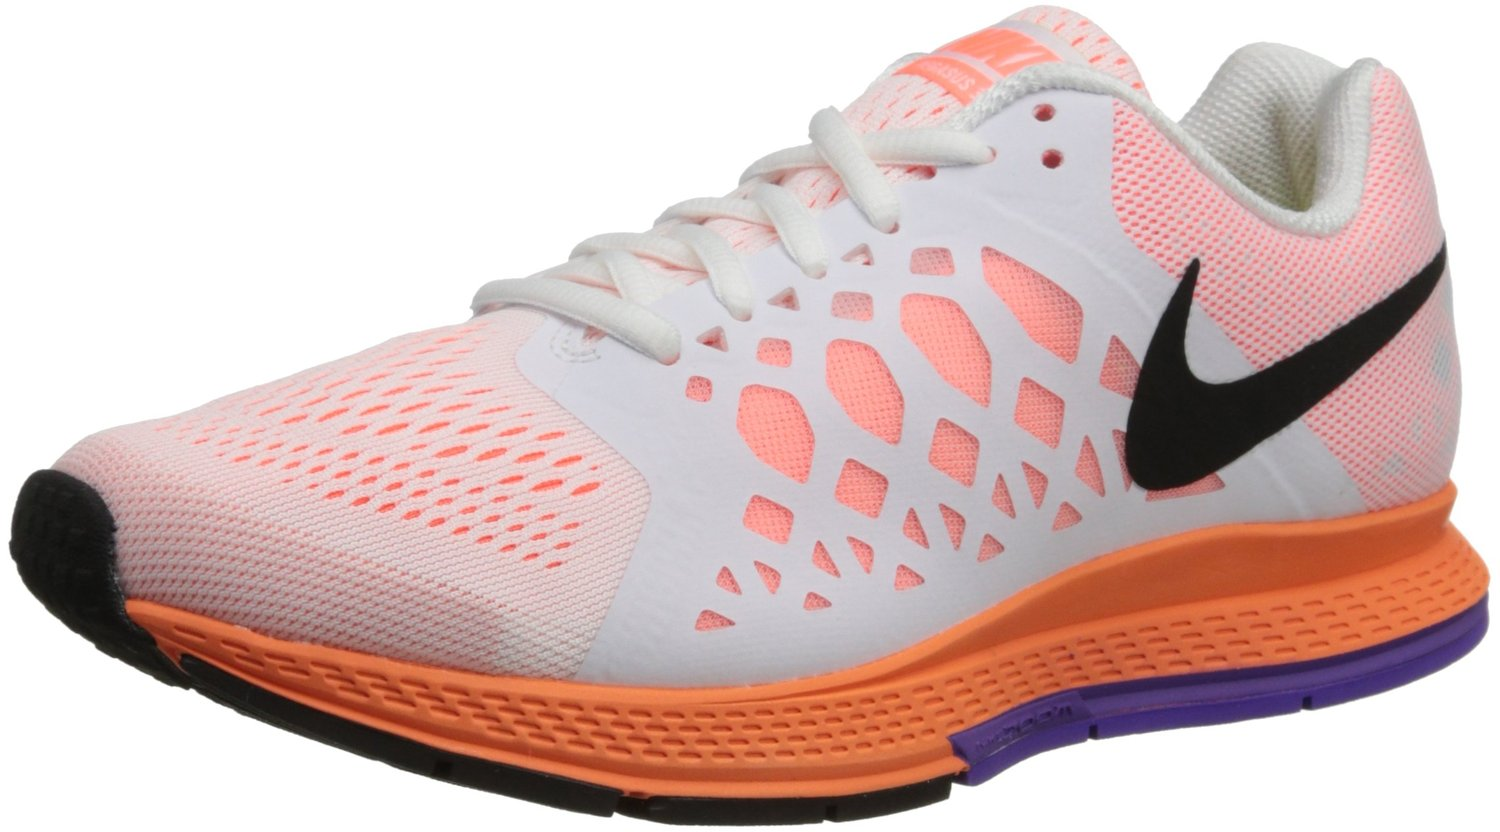 ca10c8befb50 Details about Nike Air Zoom Pegasus 31 Women s Running Shoes 654486-102  White Black Brght Mng